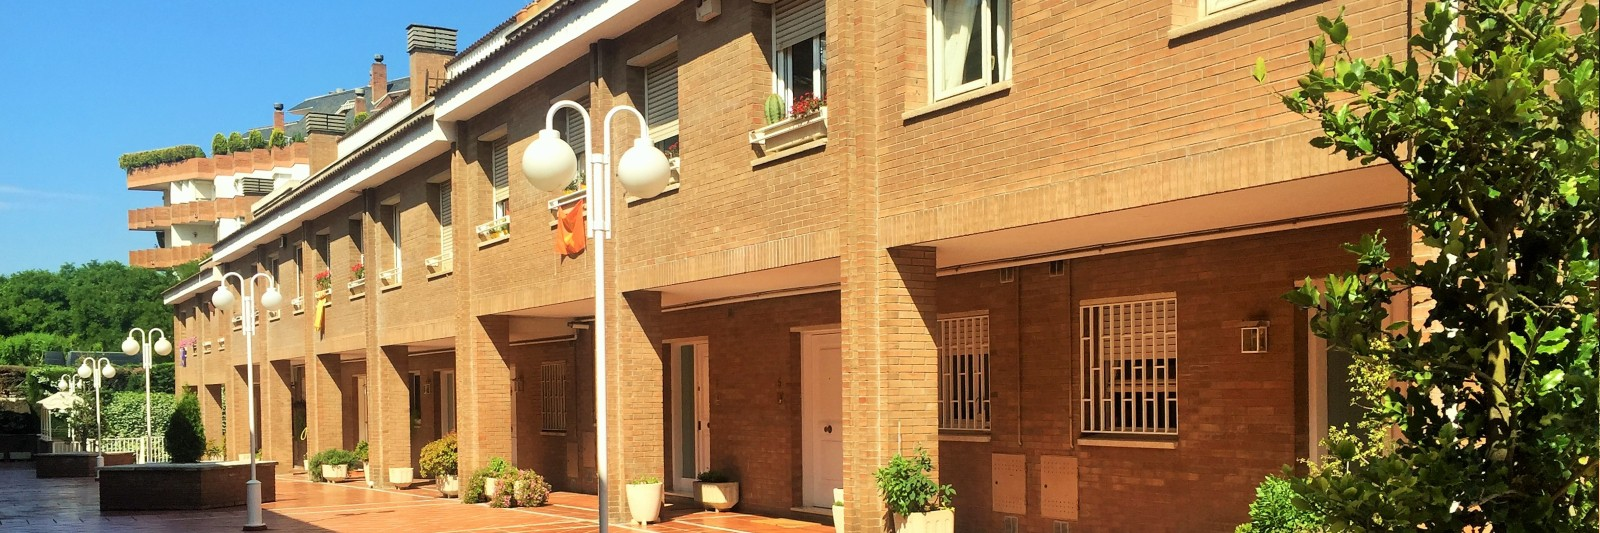 MG Inmobiliaria Sant CUgat - mobles-carre